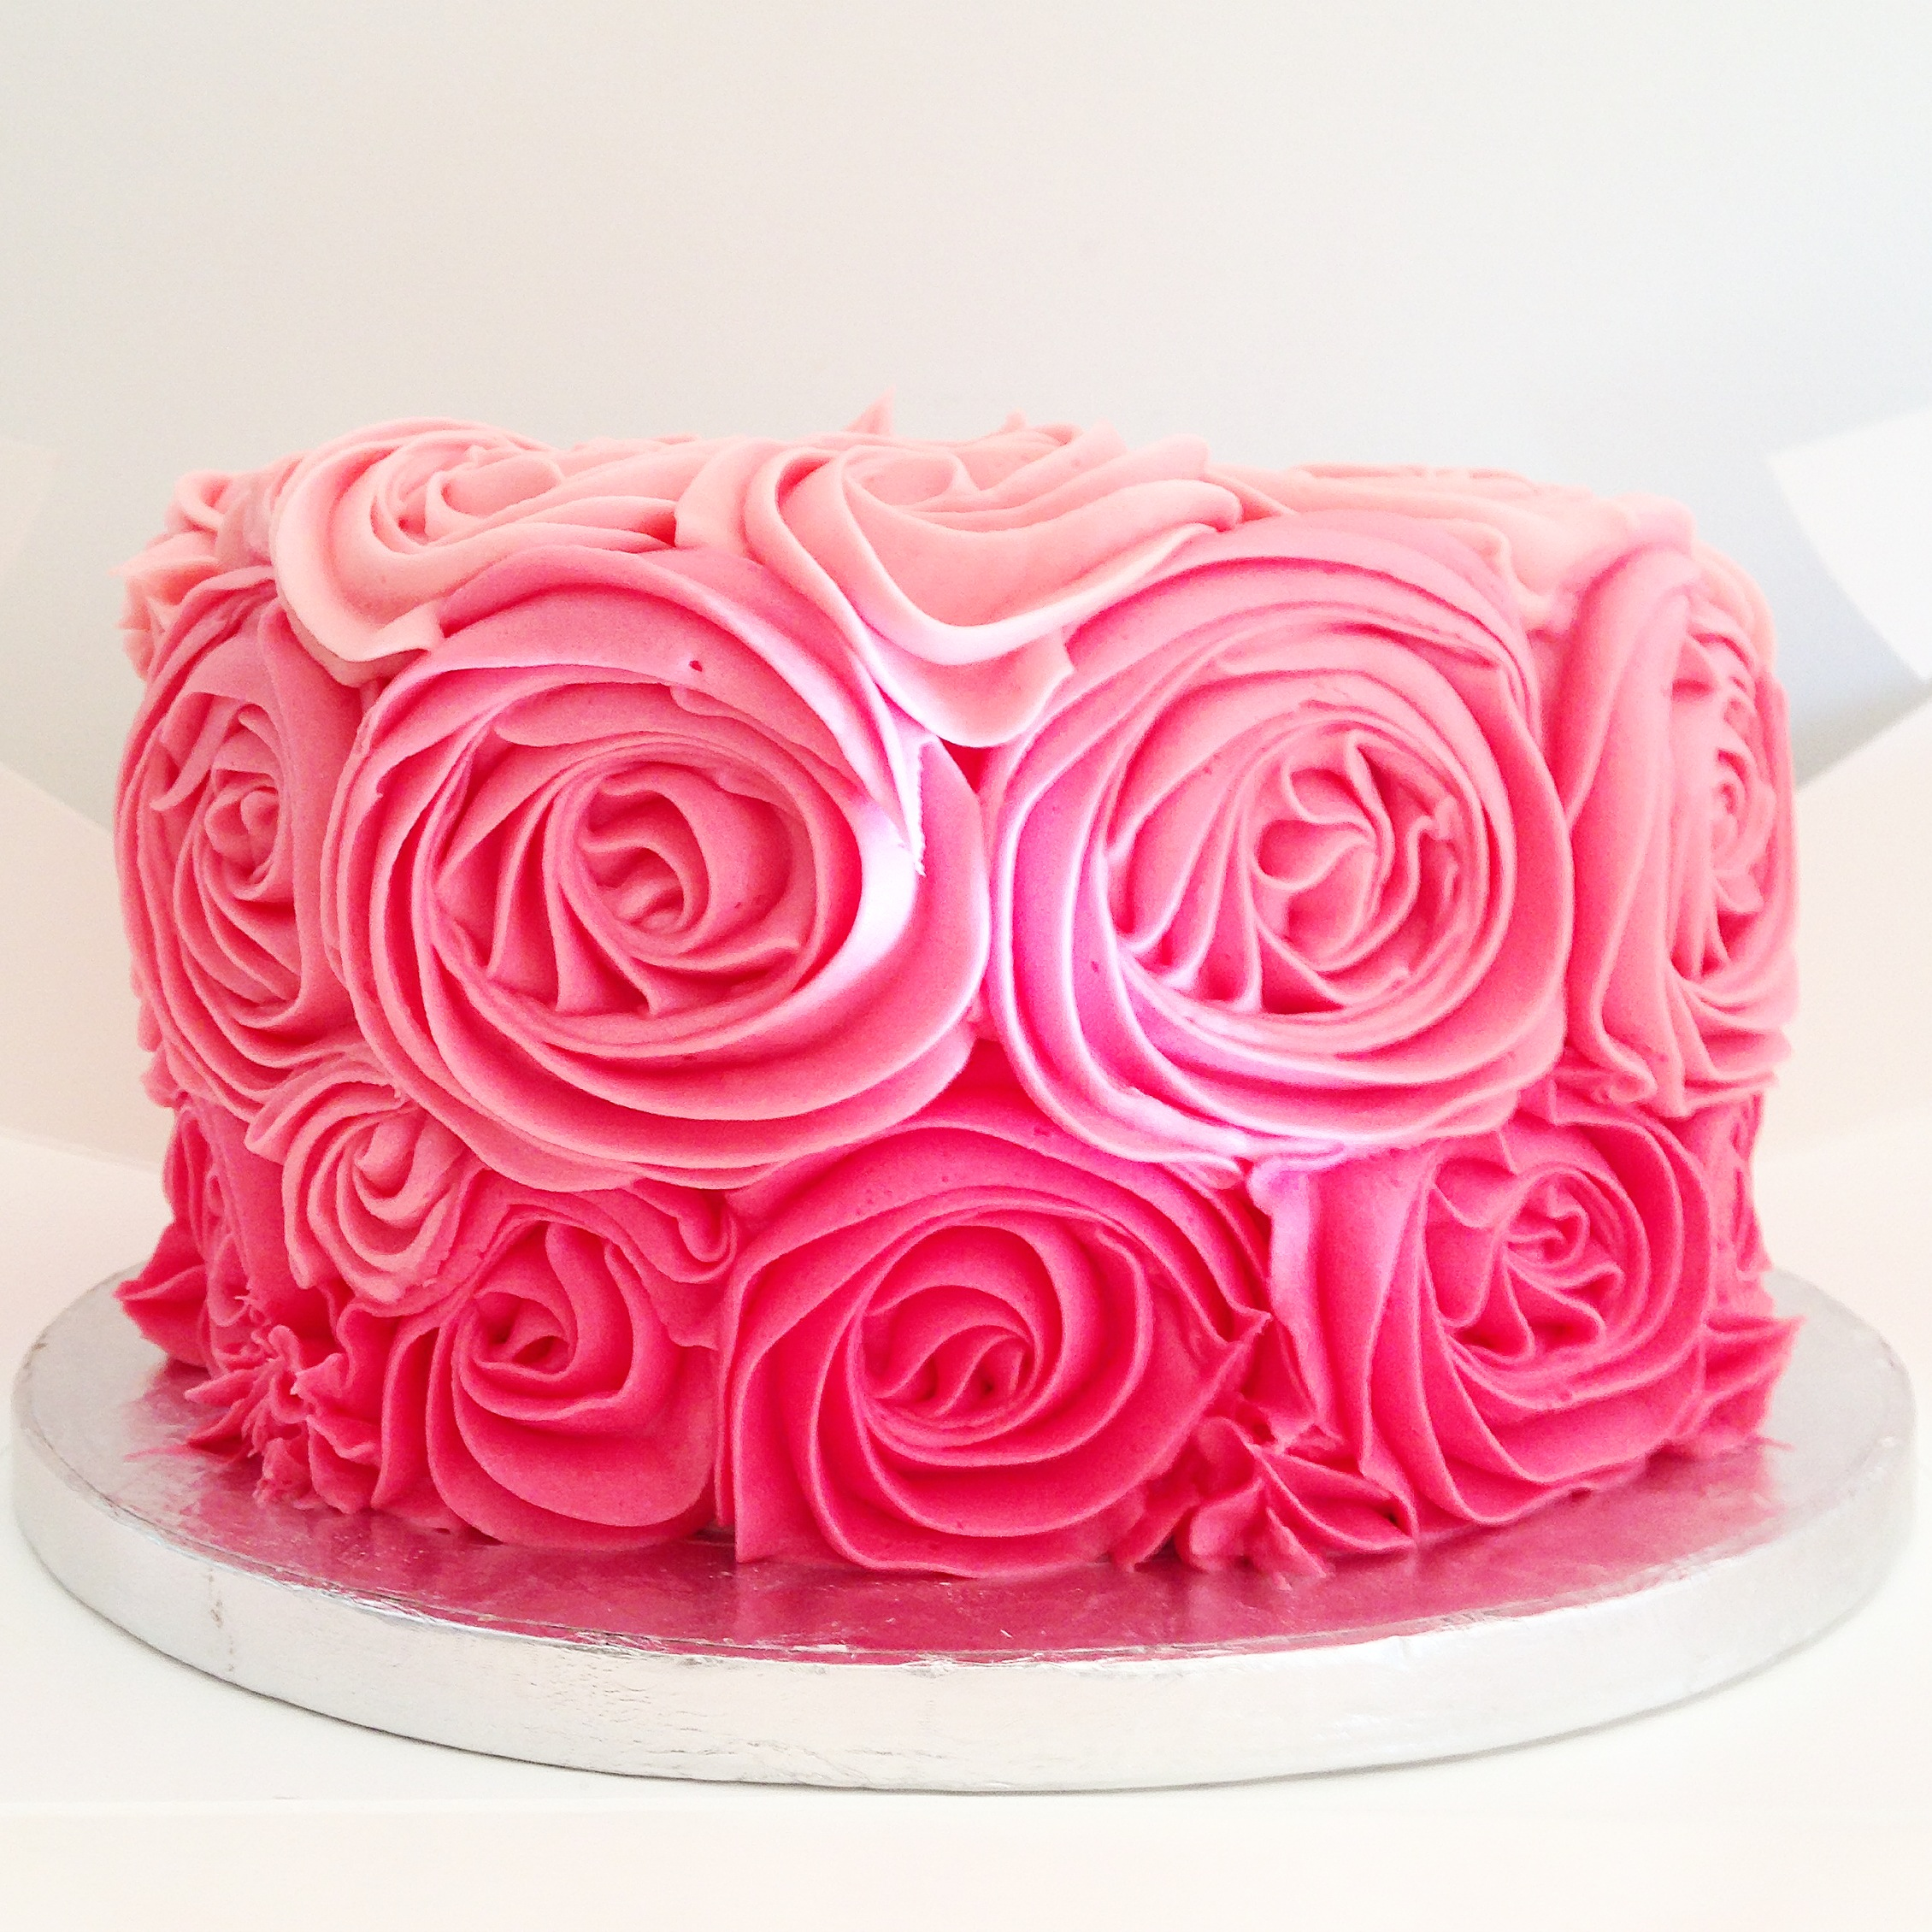 Rose Cake Sainsbury S